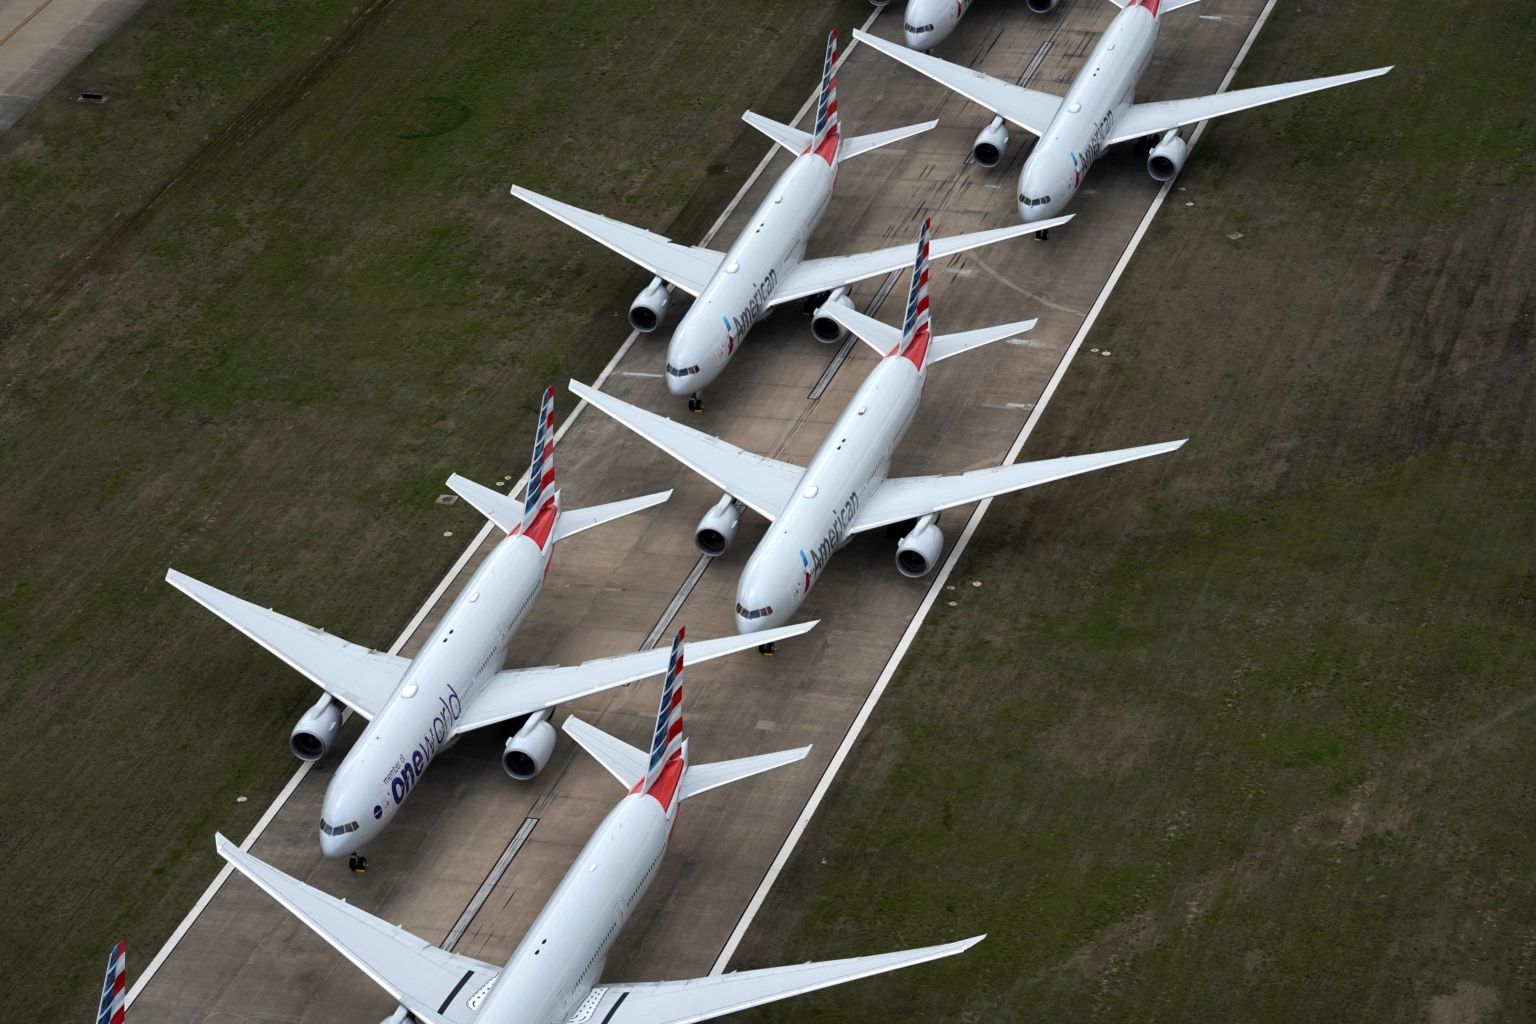 American Airlines planes parked on ground